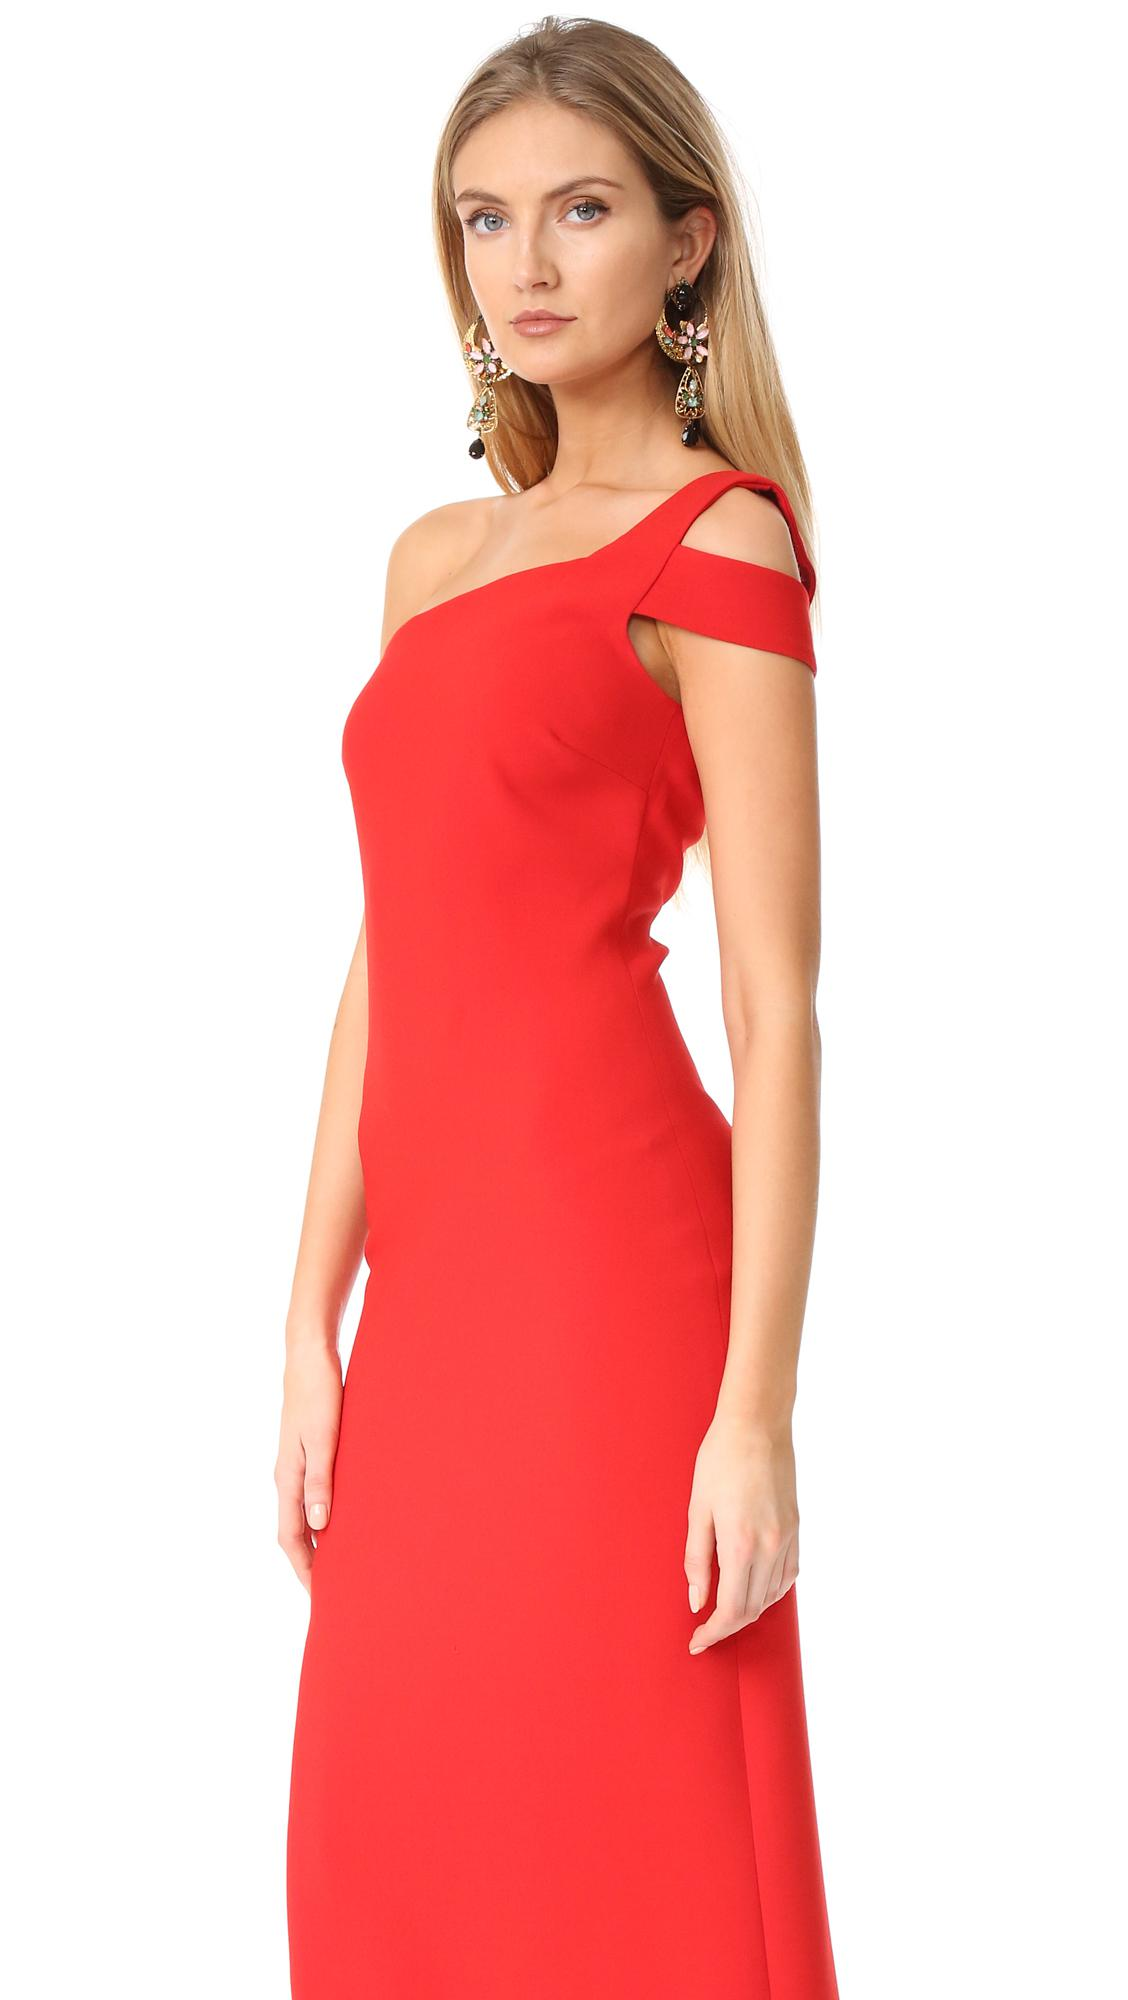 b8ba3fb064a Likely Maxson Dress in Red - Lyst